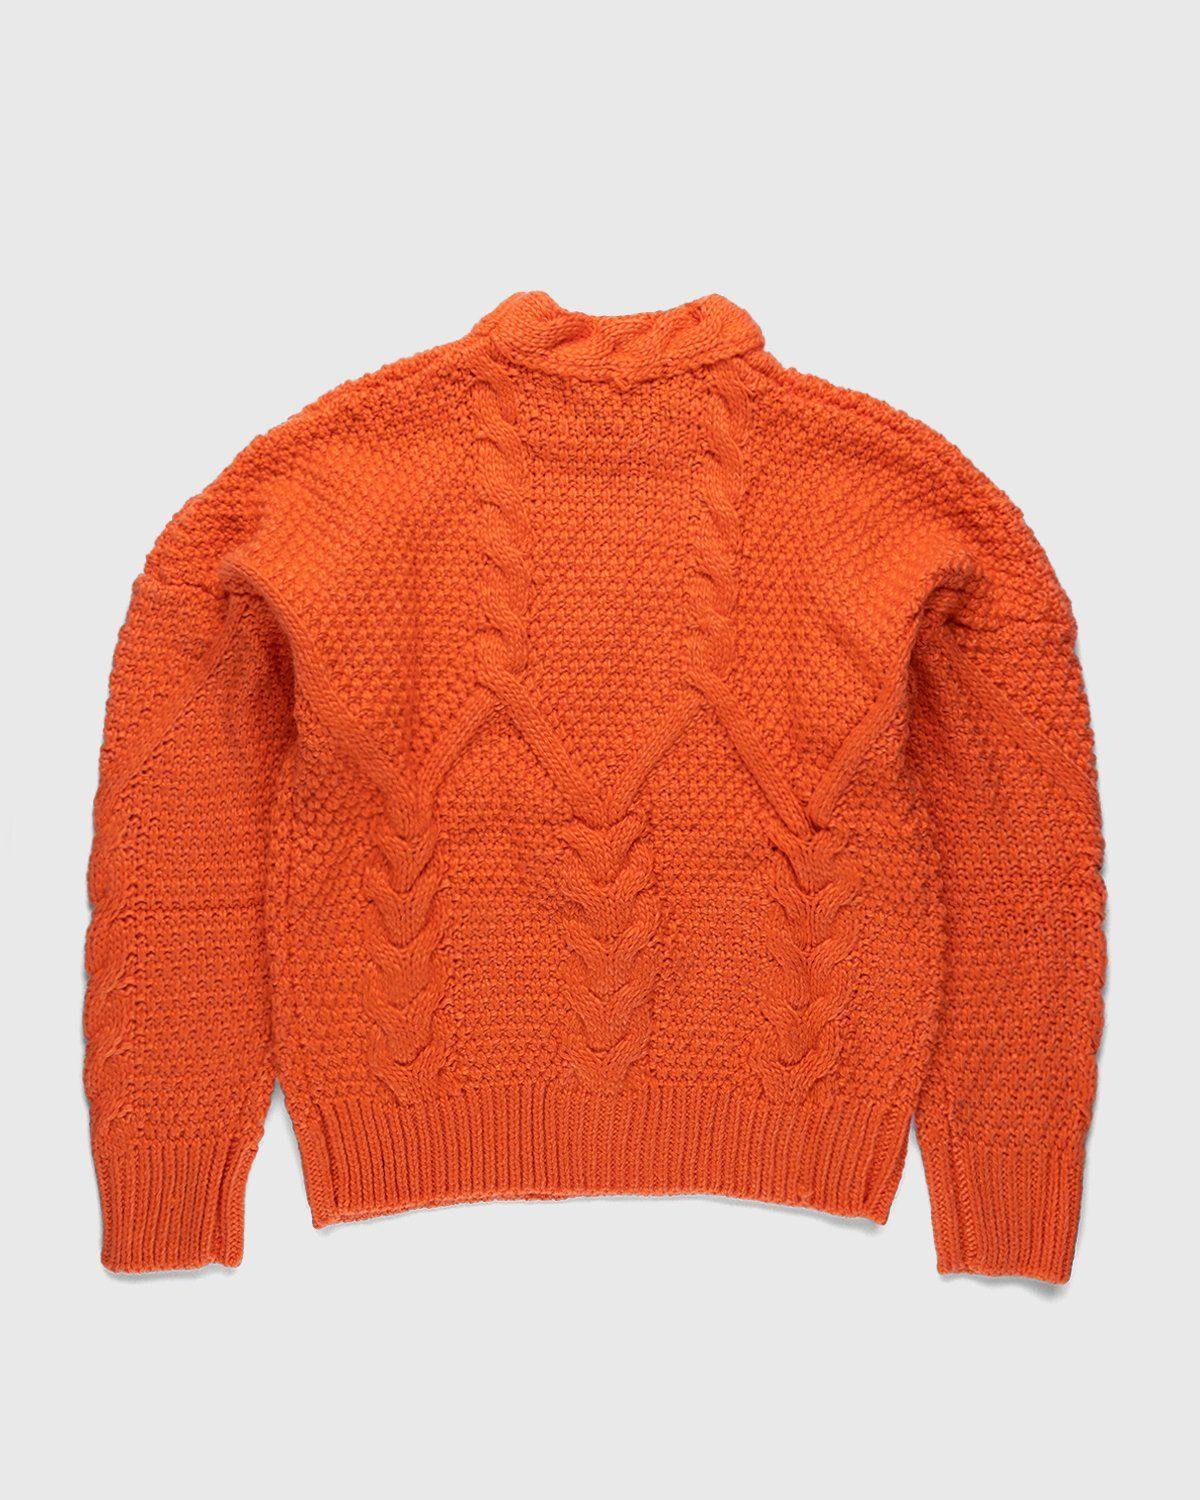 Winnie New York - Intwined Cable Knit Sweater Red - Image 2